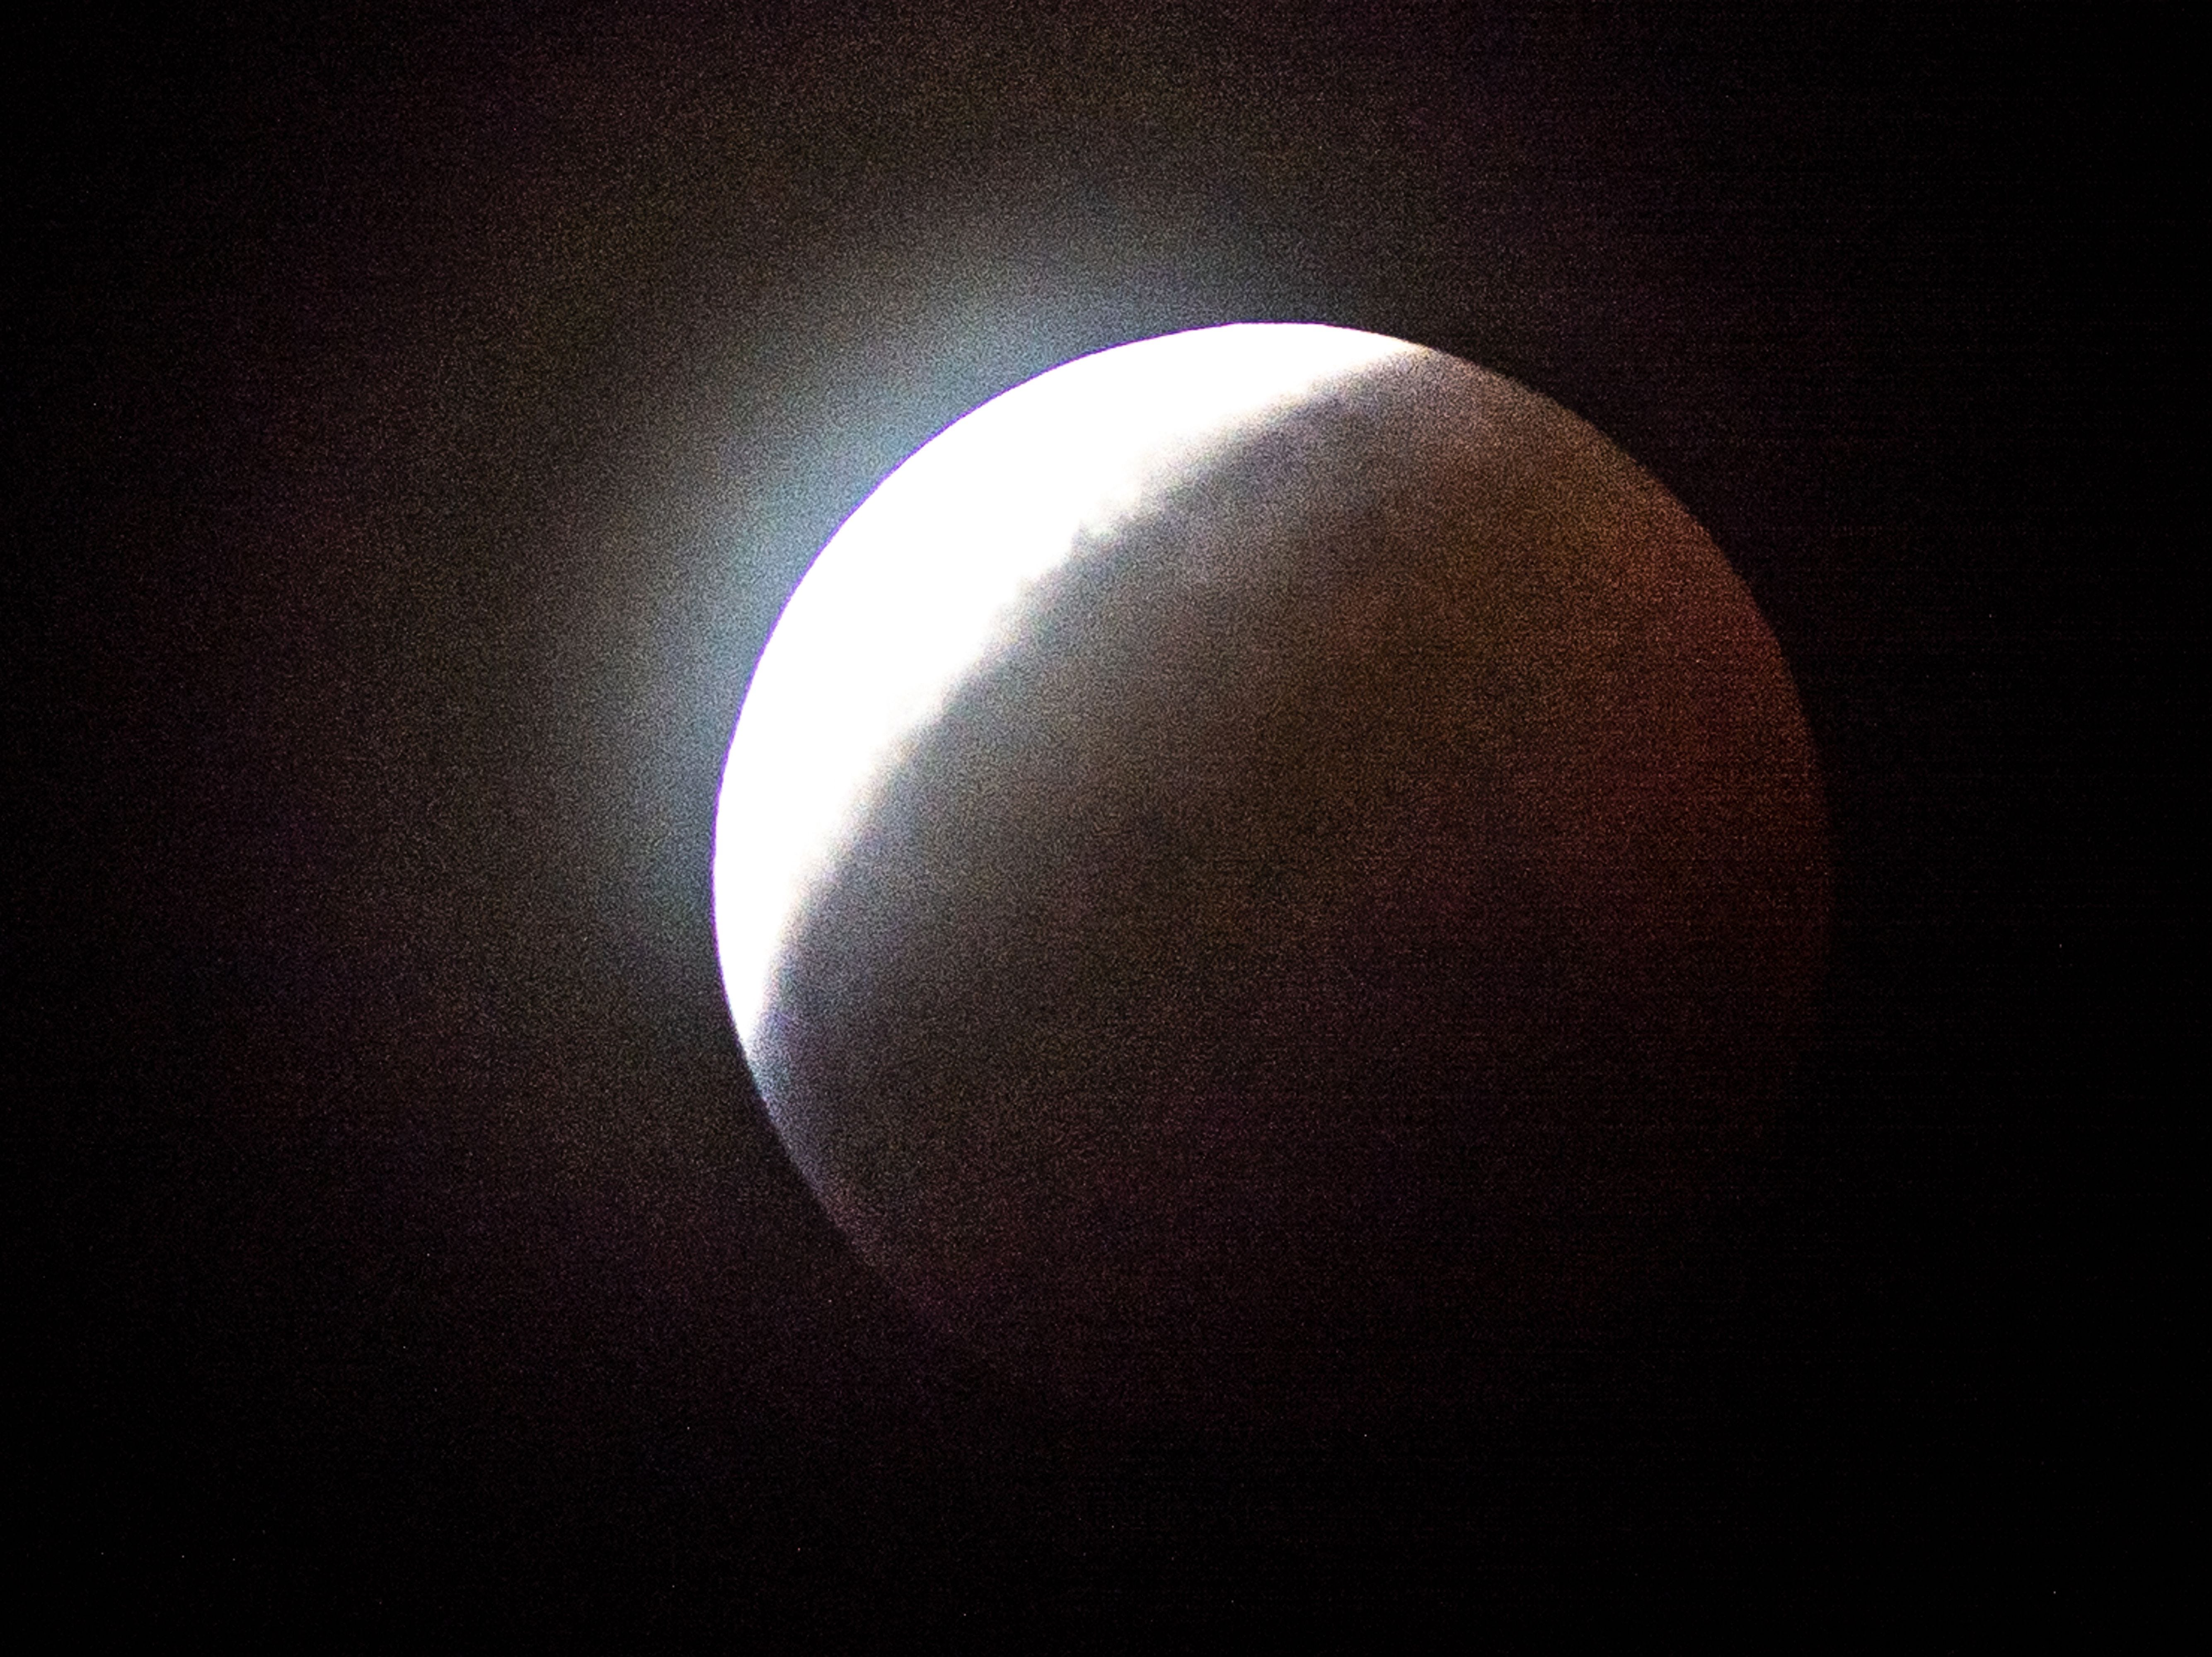 Earth's shadow begins to totally obscure the view of the so-called Super Blood Wolf Moon during a total lunar eclipse, on Sunday January 20, 2019, in Miami, Florida. - The January 21 total lunar eclipse will be the last one until May 2021, and the last one visible from the United States until 2022. (Photo by Gaston De Cardenas / AFP)